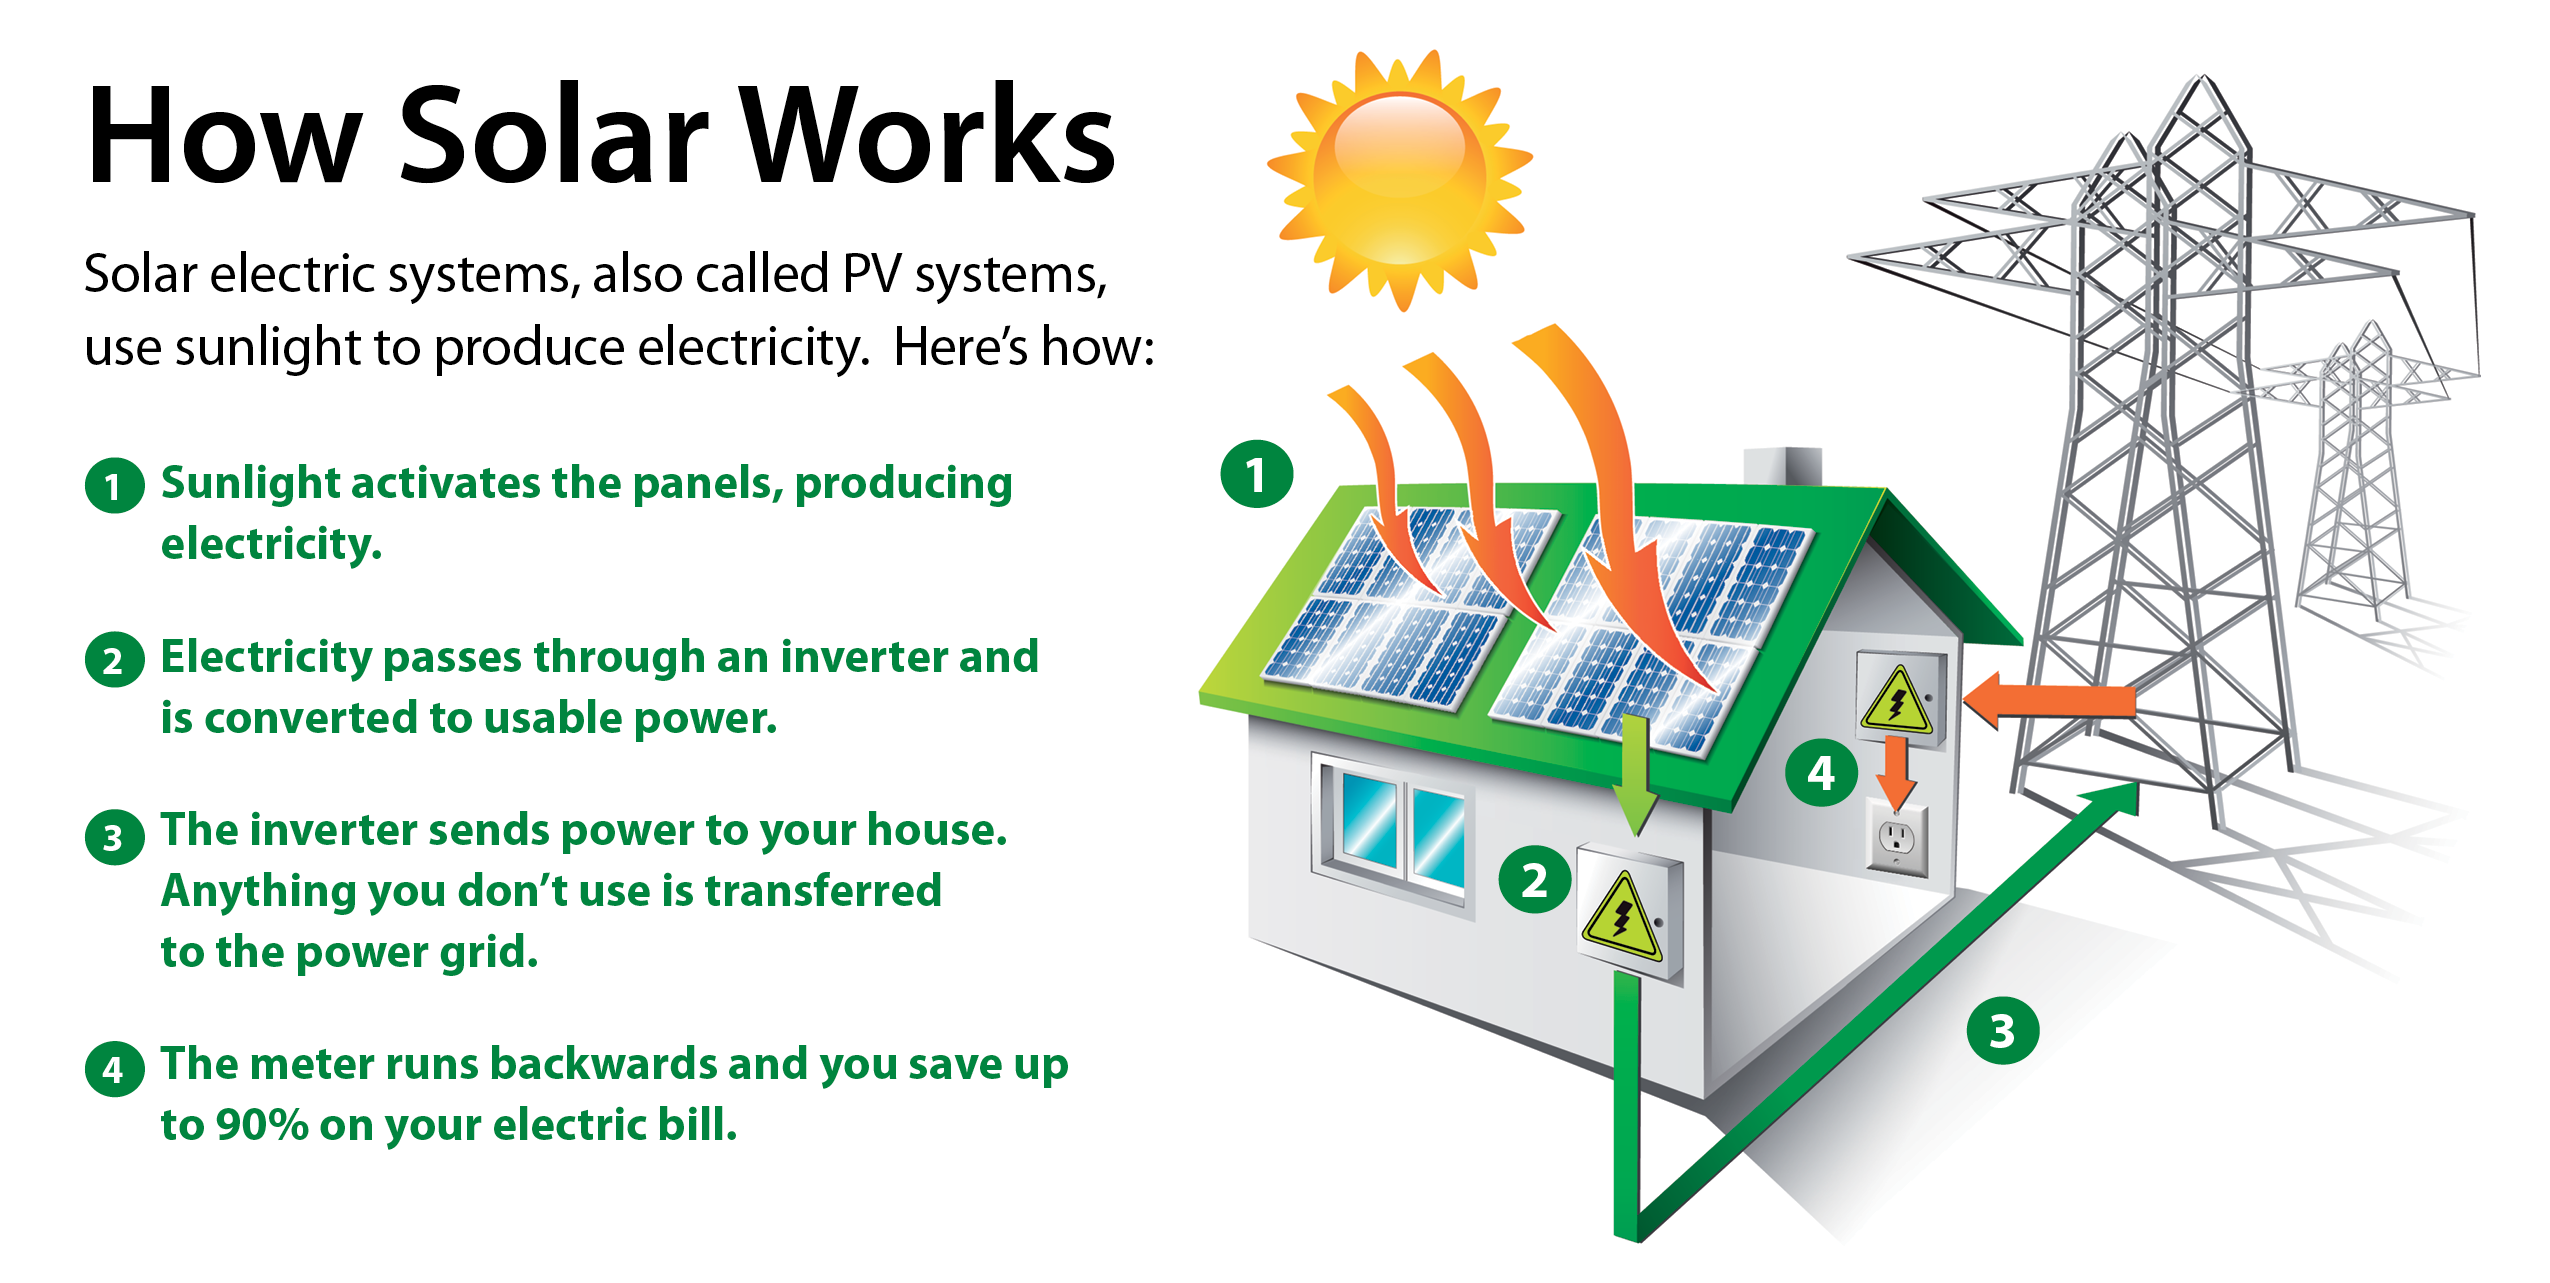 Of The Electric In Your Home Contact Licensed Electrical Frequently Asked Questions About Going Solar With Grid How Does A System Work